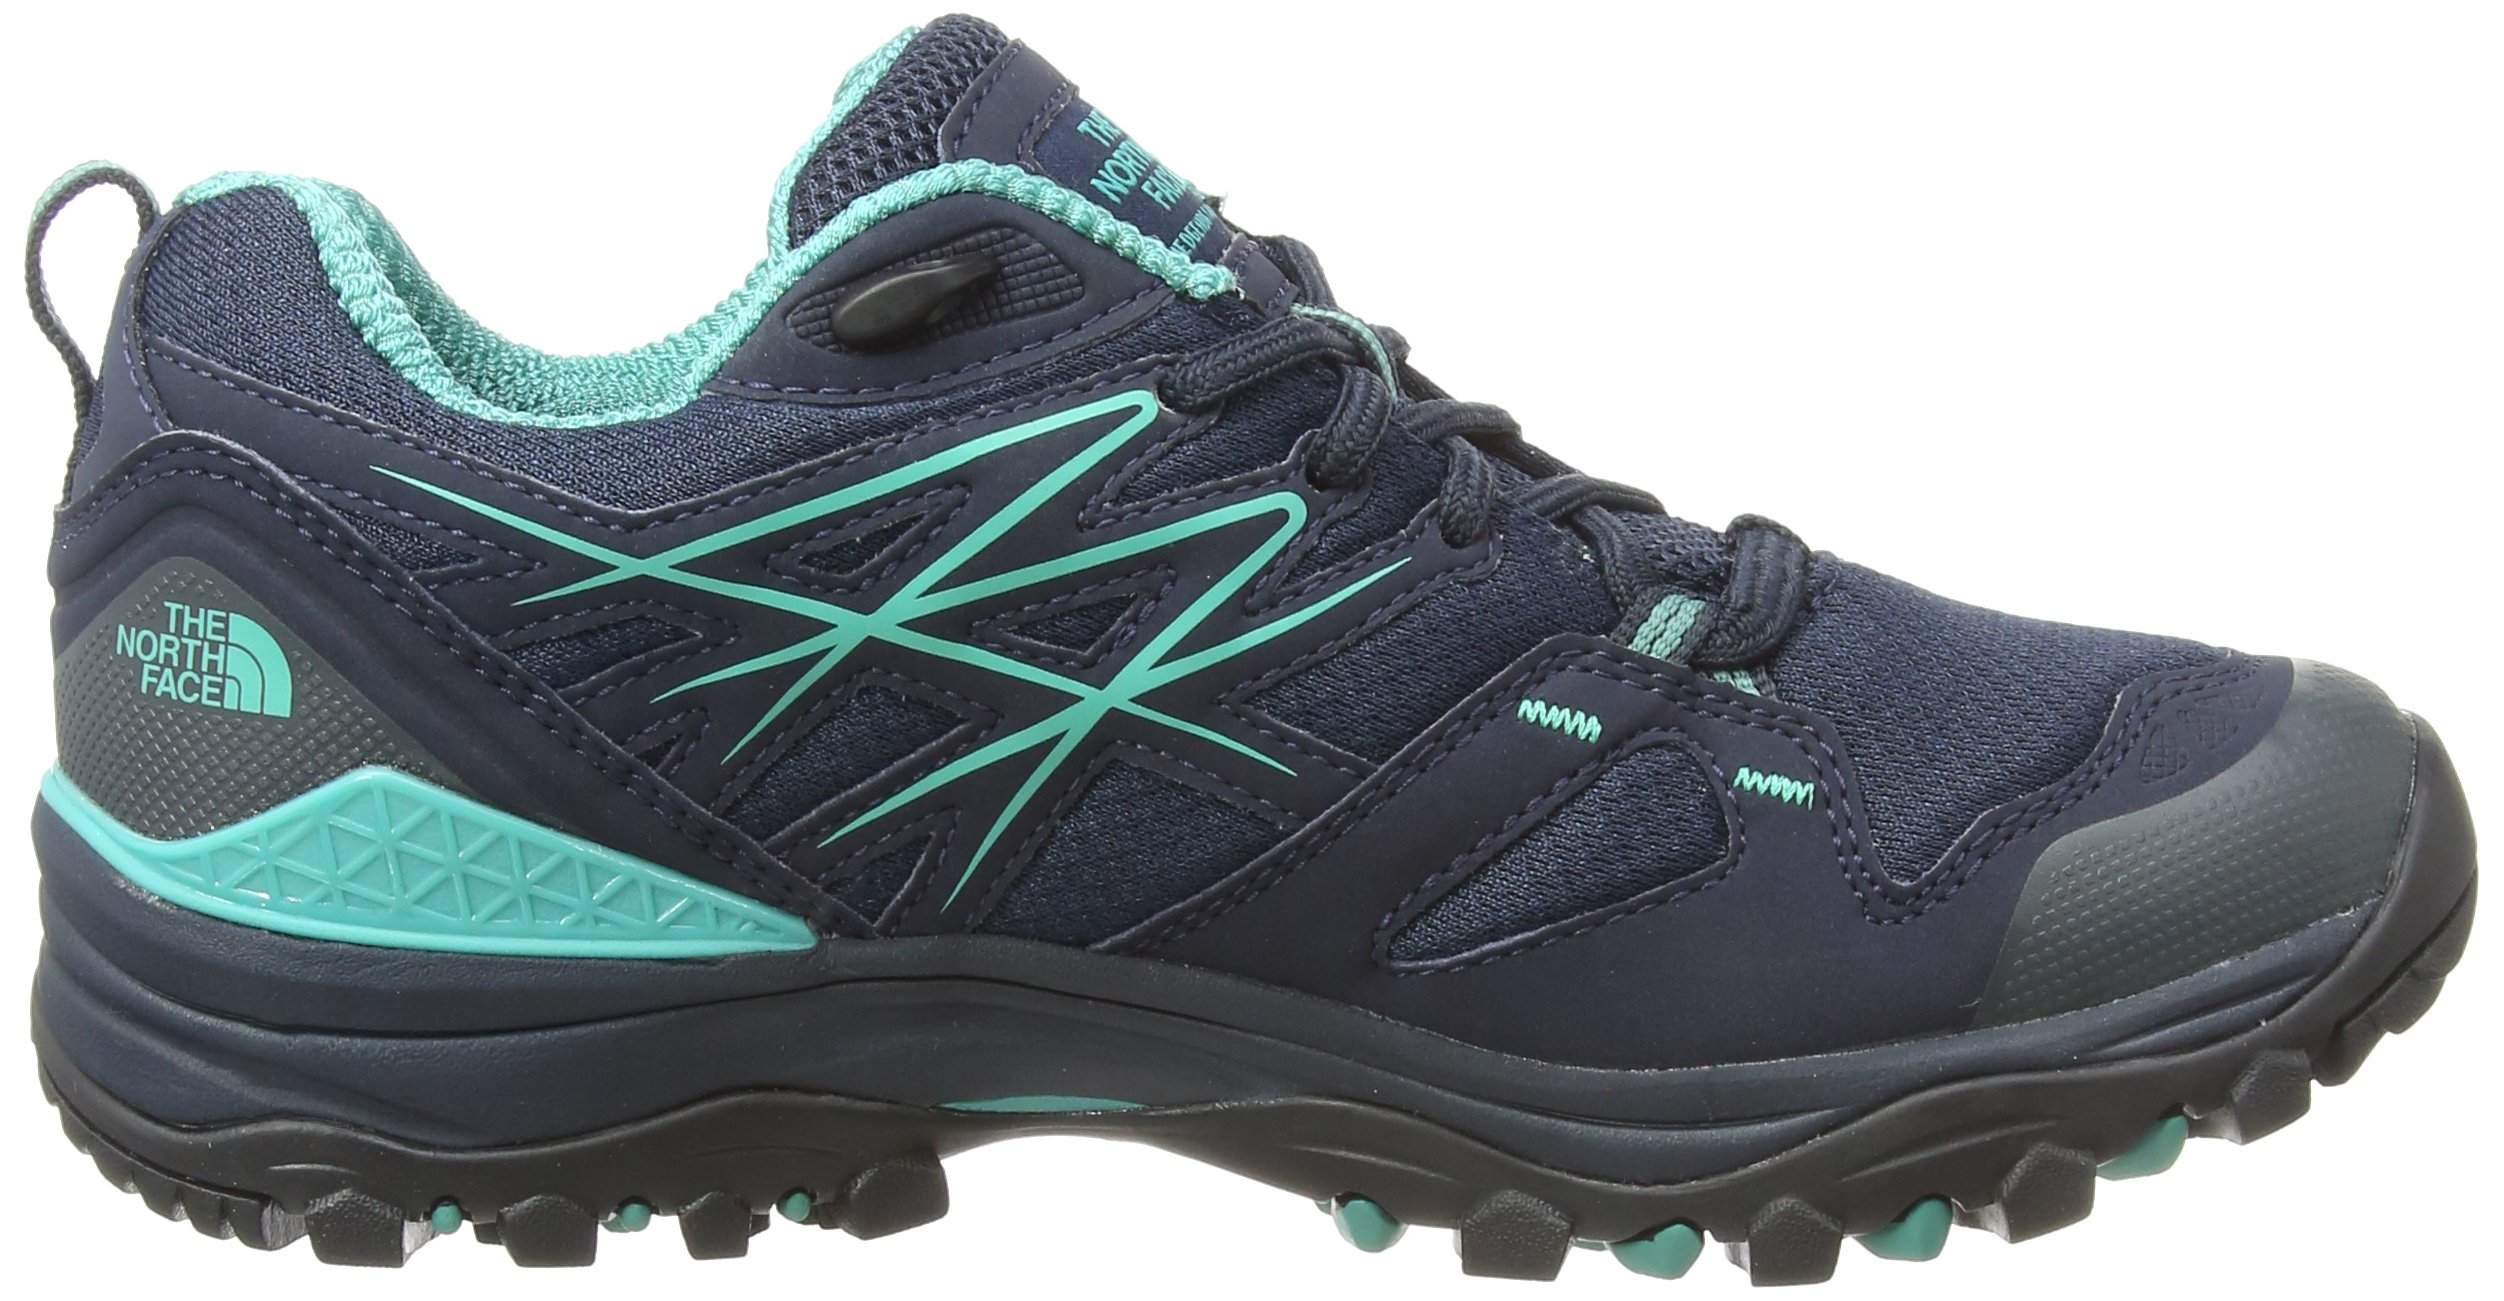 817ZVghR PL - THE NORTH FACE Women's Hedgehog Fastpack Gore-tex (EU) Low Rise Hiking Boots